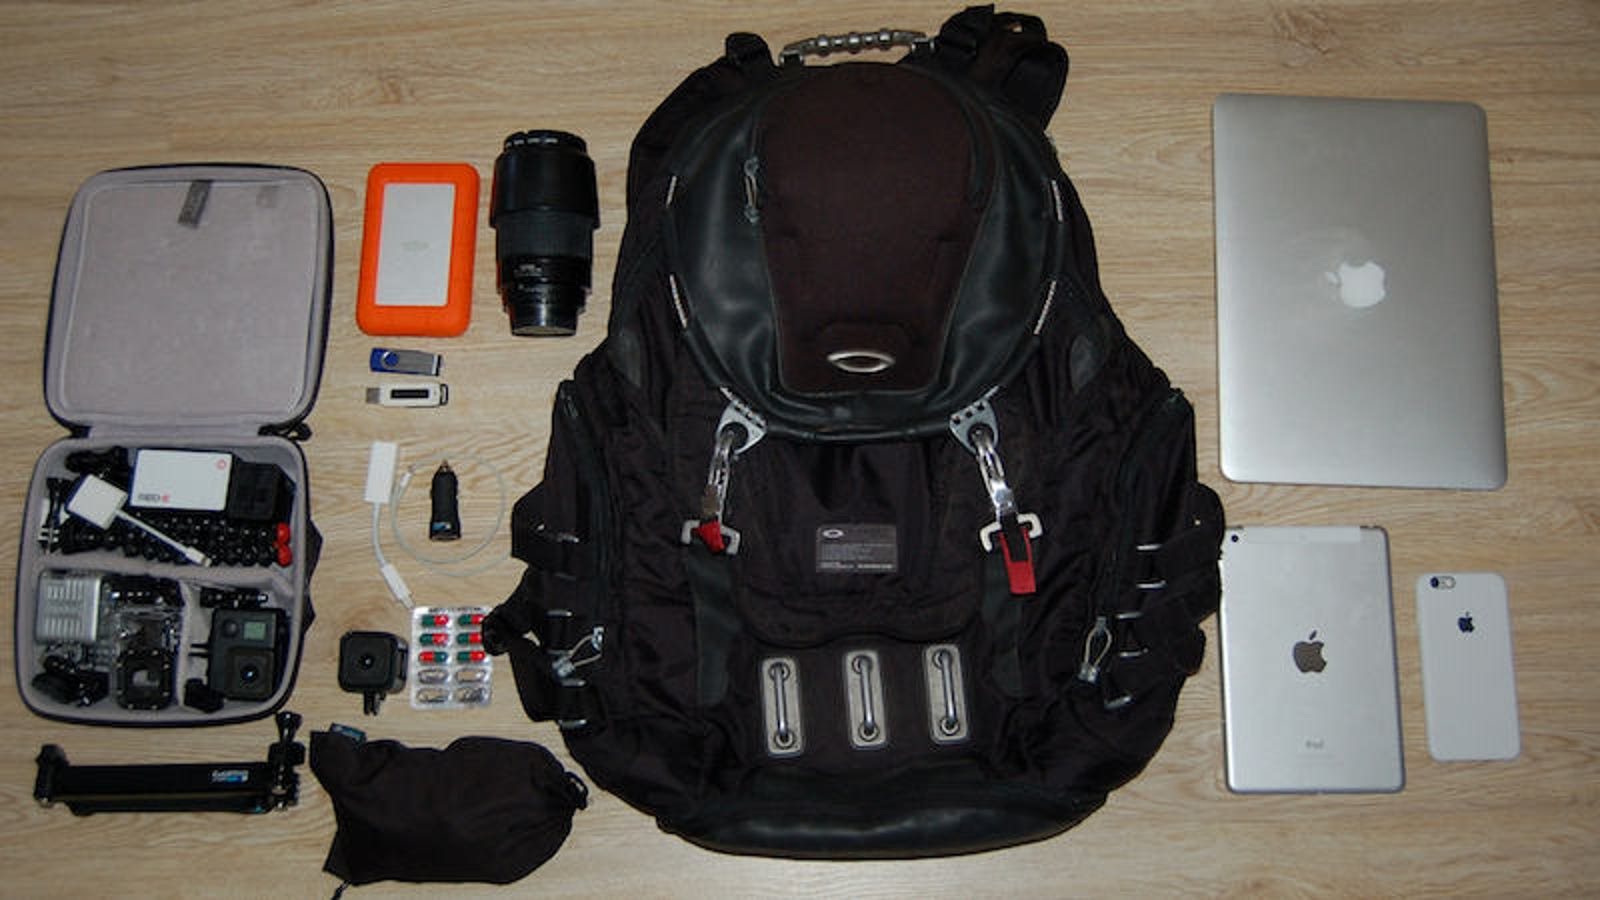 The Gopro Friendly Bag